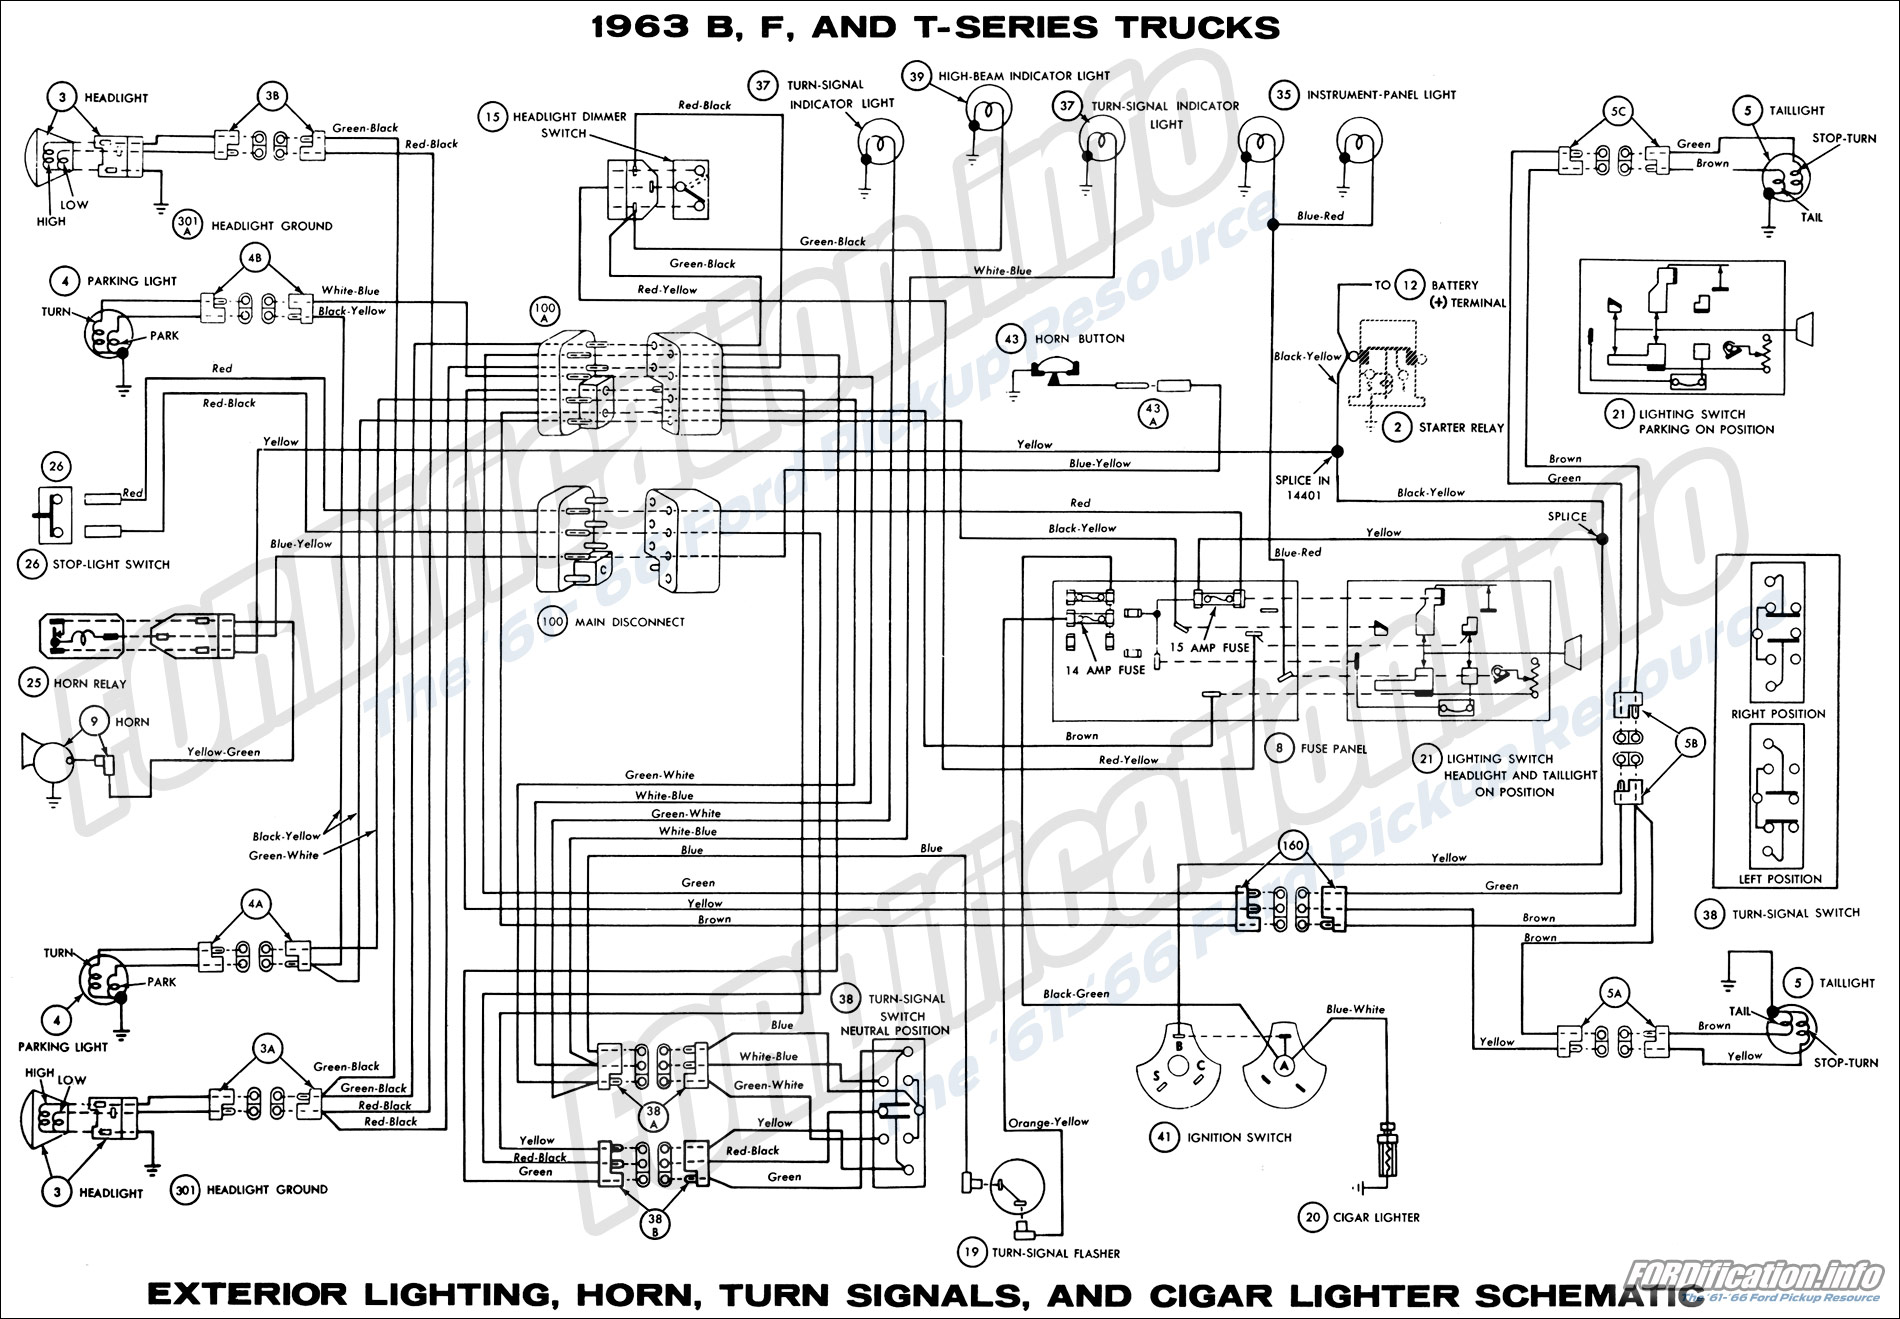 DIAGRAM] Danelectro 63 Wiring Diagram FULL Version HD Quality Wiring Diagram  - JMSCHEMATICE.SLOWLIFEUMBRIA.IT